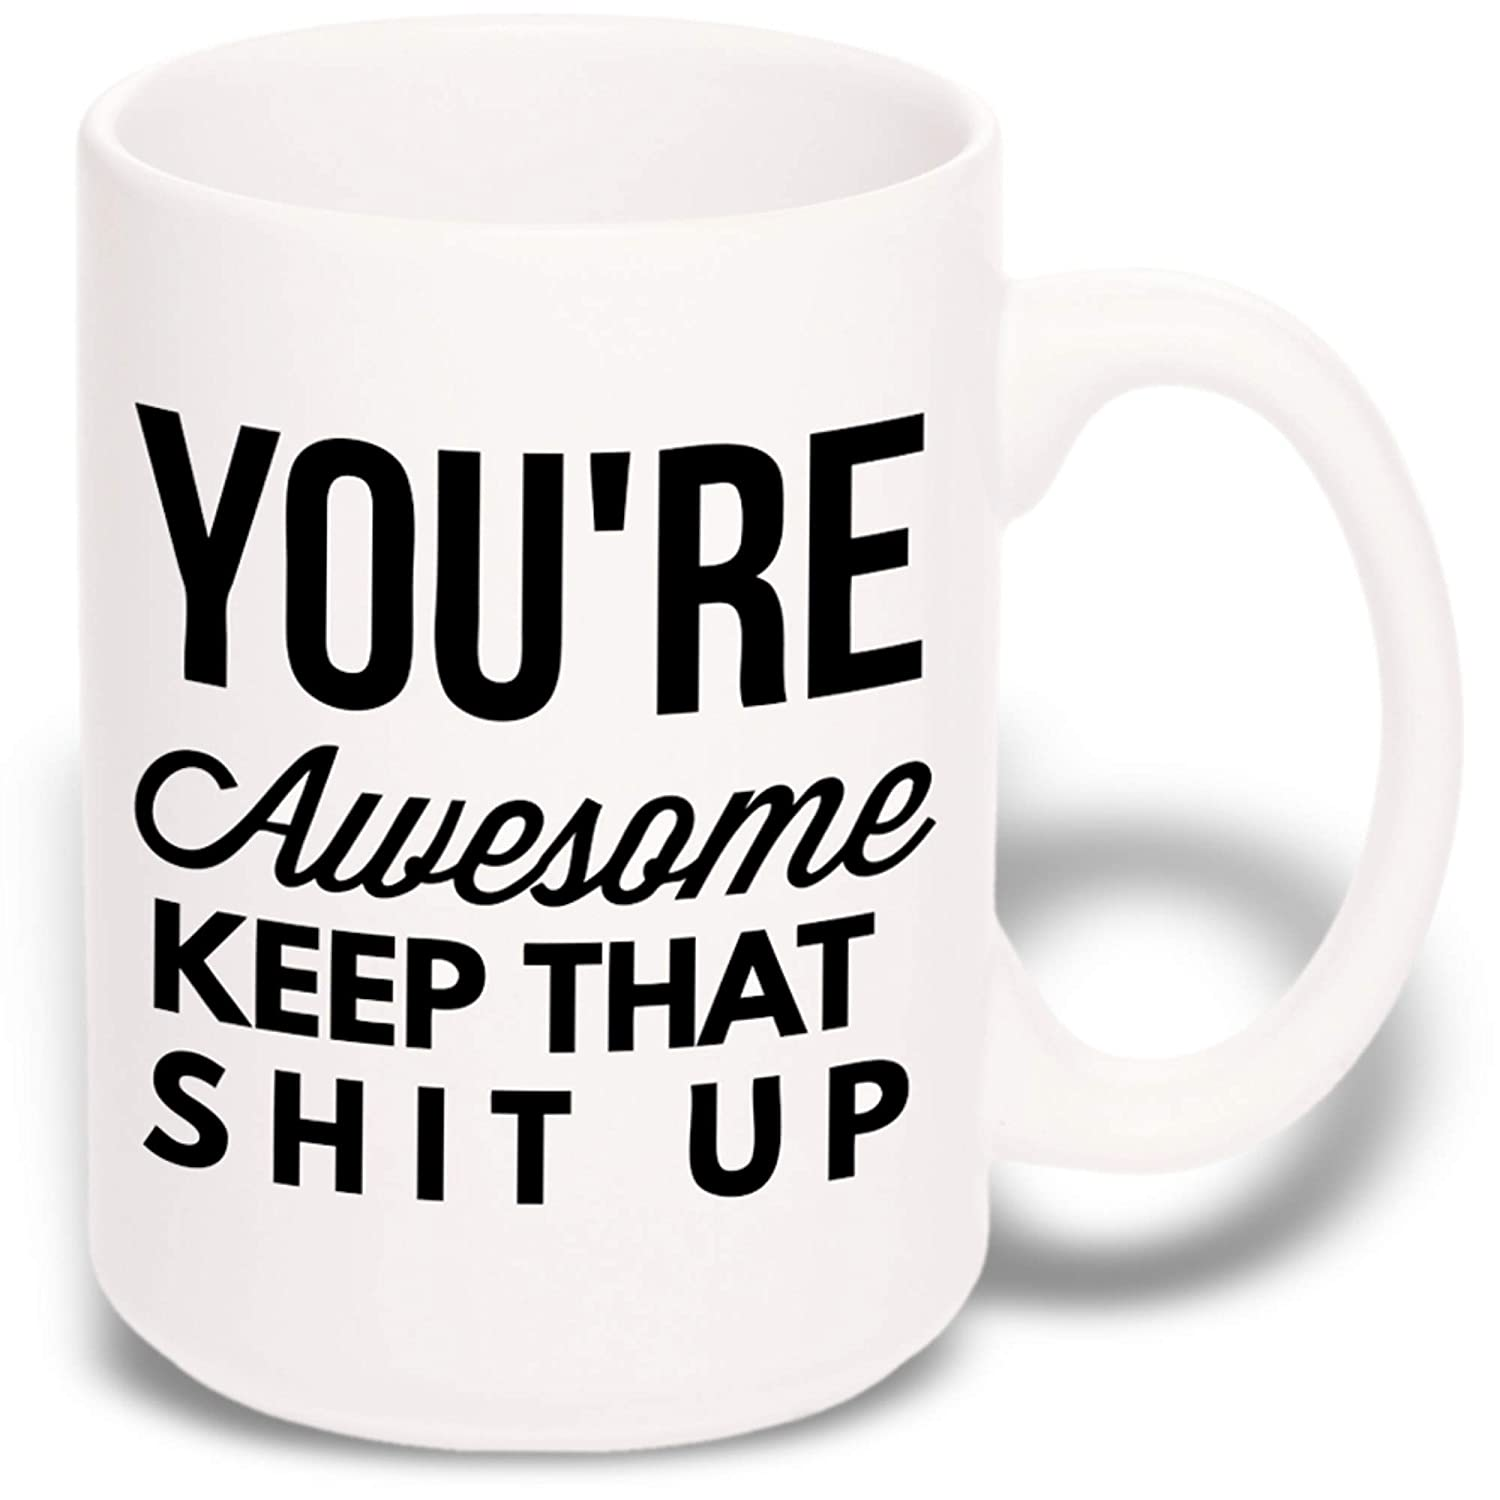 15 oz Large Funny Coffee Mug: You're Awesome Unique Ceramic Novelty Holiday Christmas Hanukkah Gift for Men & Women Who Love Tea Mugs & Coffee Cups Gypsy's Cart